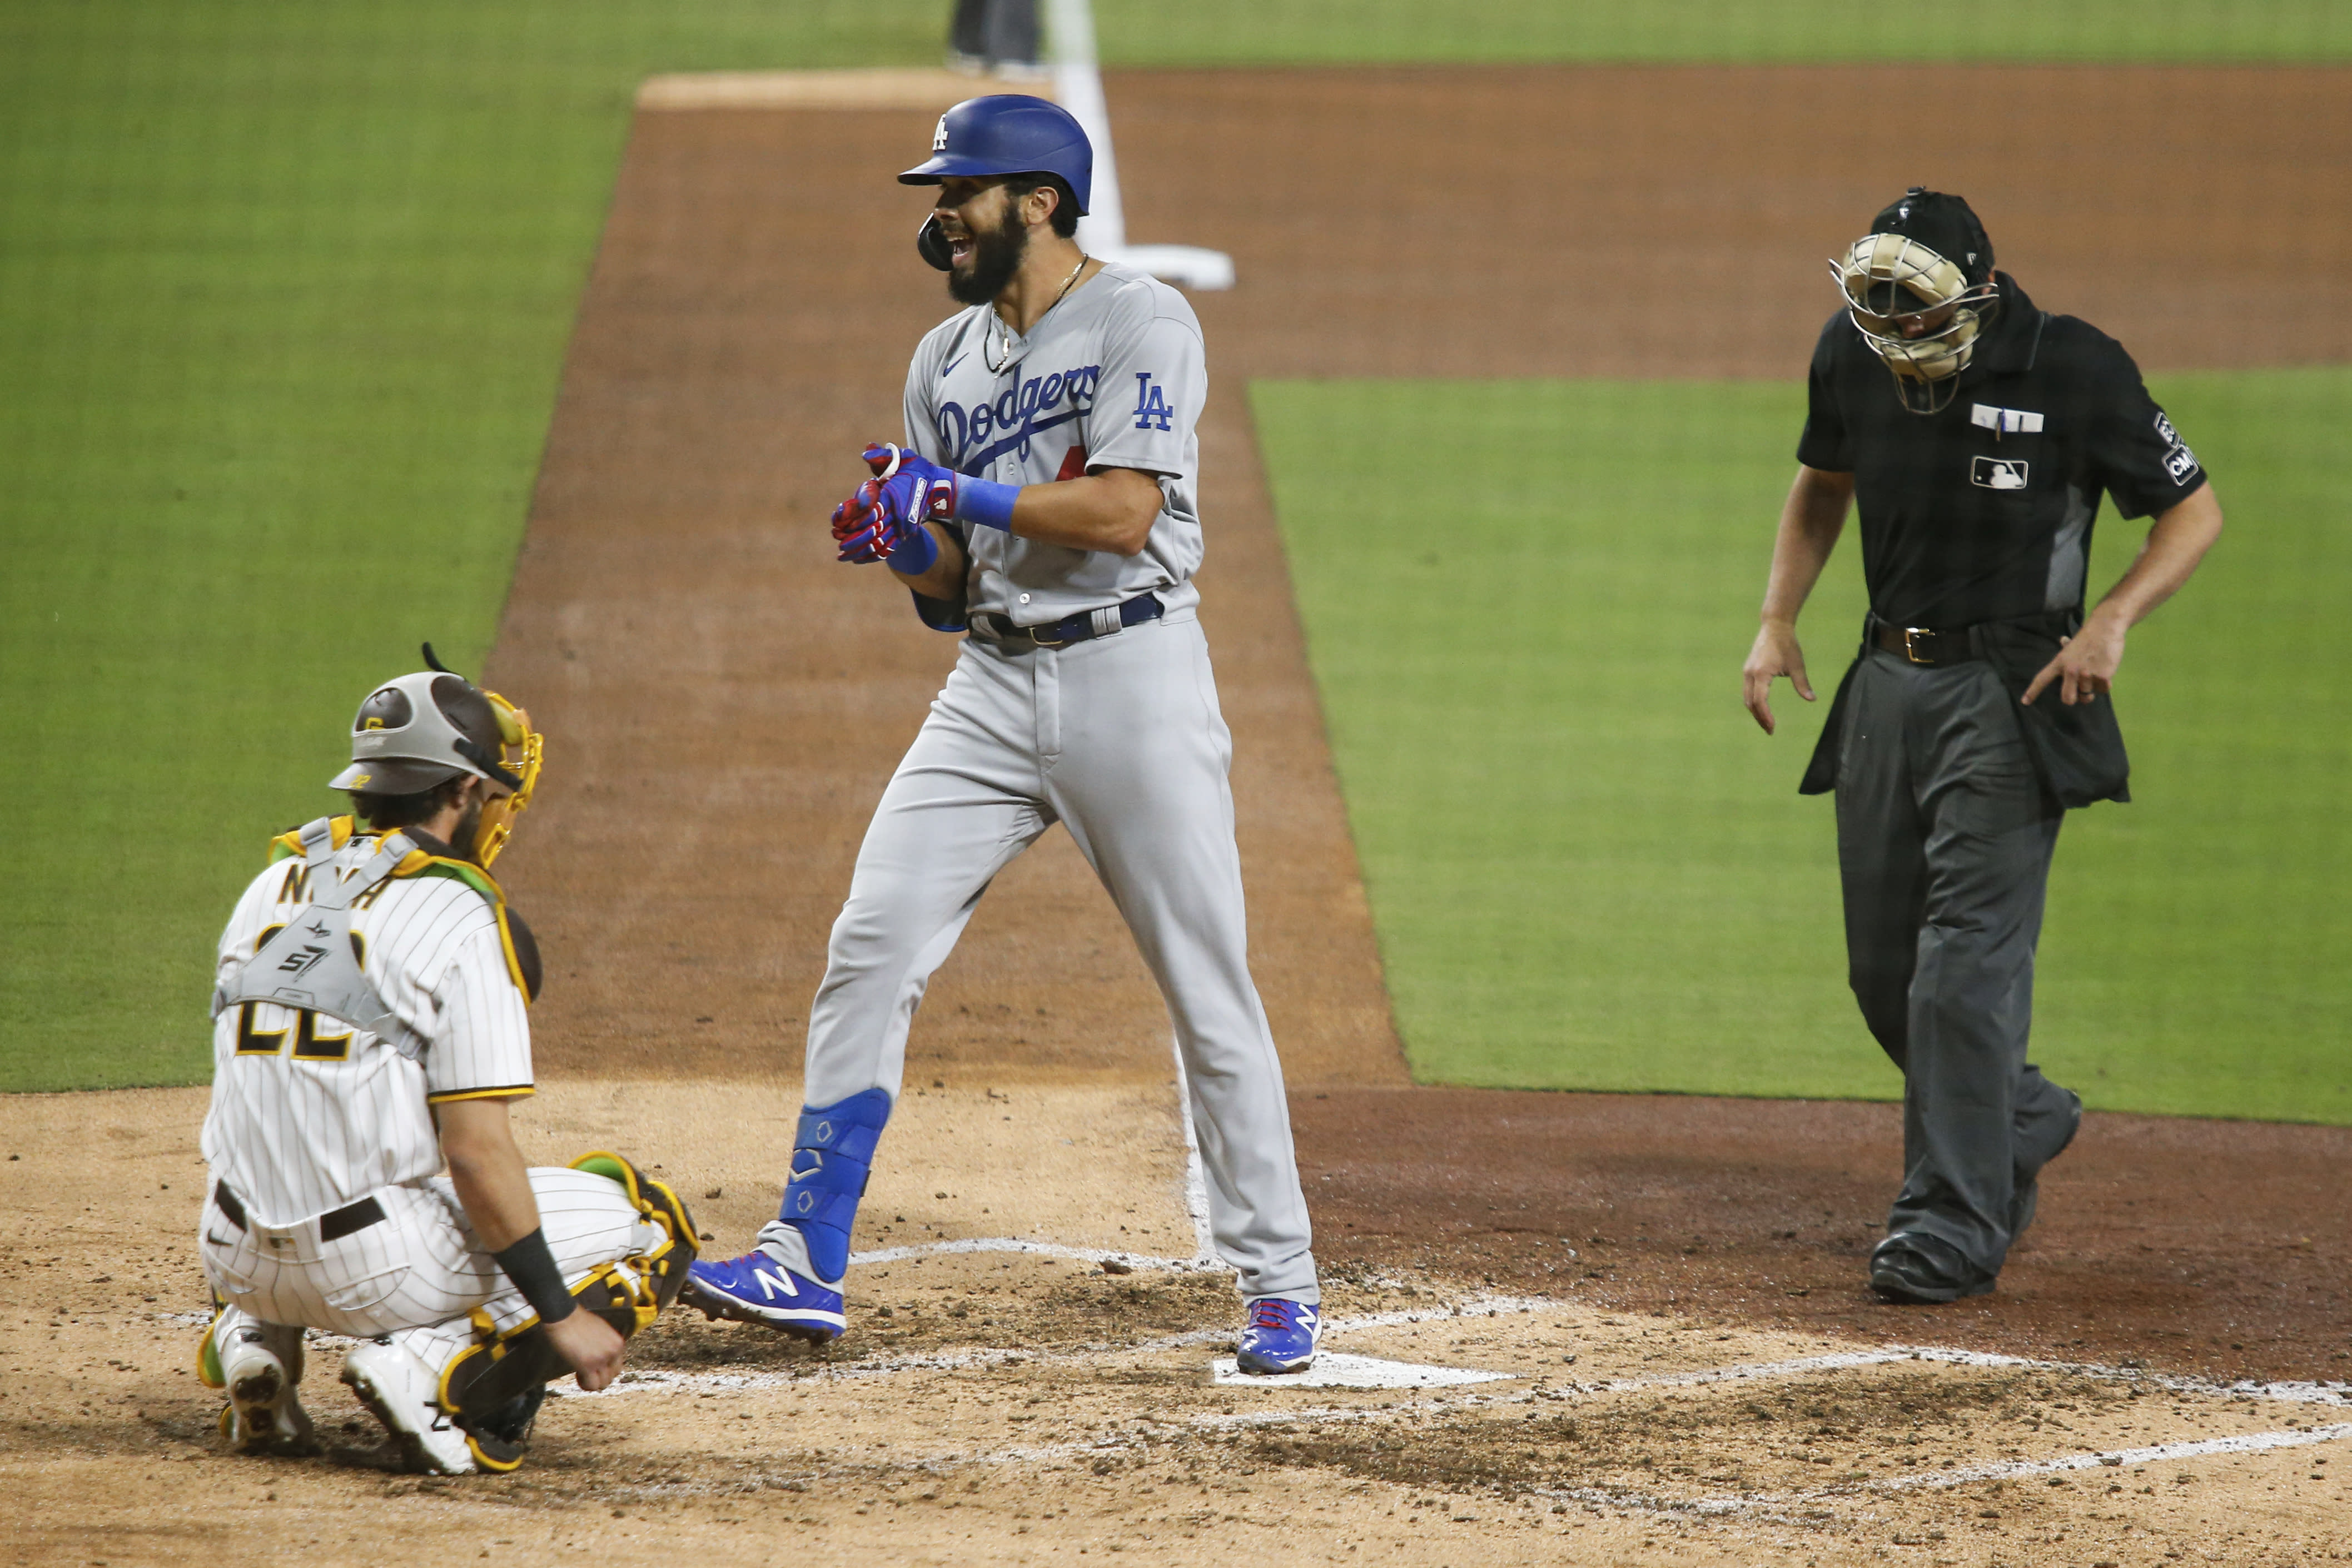 Los Angeles Dodgers' Edwin Rios reacts as he crosses home plate after hitting a solo home run against the San Diego Padres starting pitcher Zach Davies in the fifth inning of a baseball game Tuesday, Sept. 15, 2020, in San Diego. (AP Photo/Derrick Tuskan)